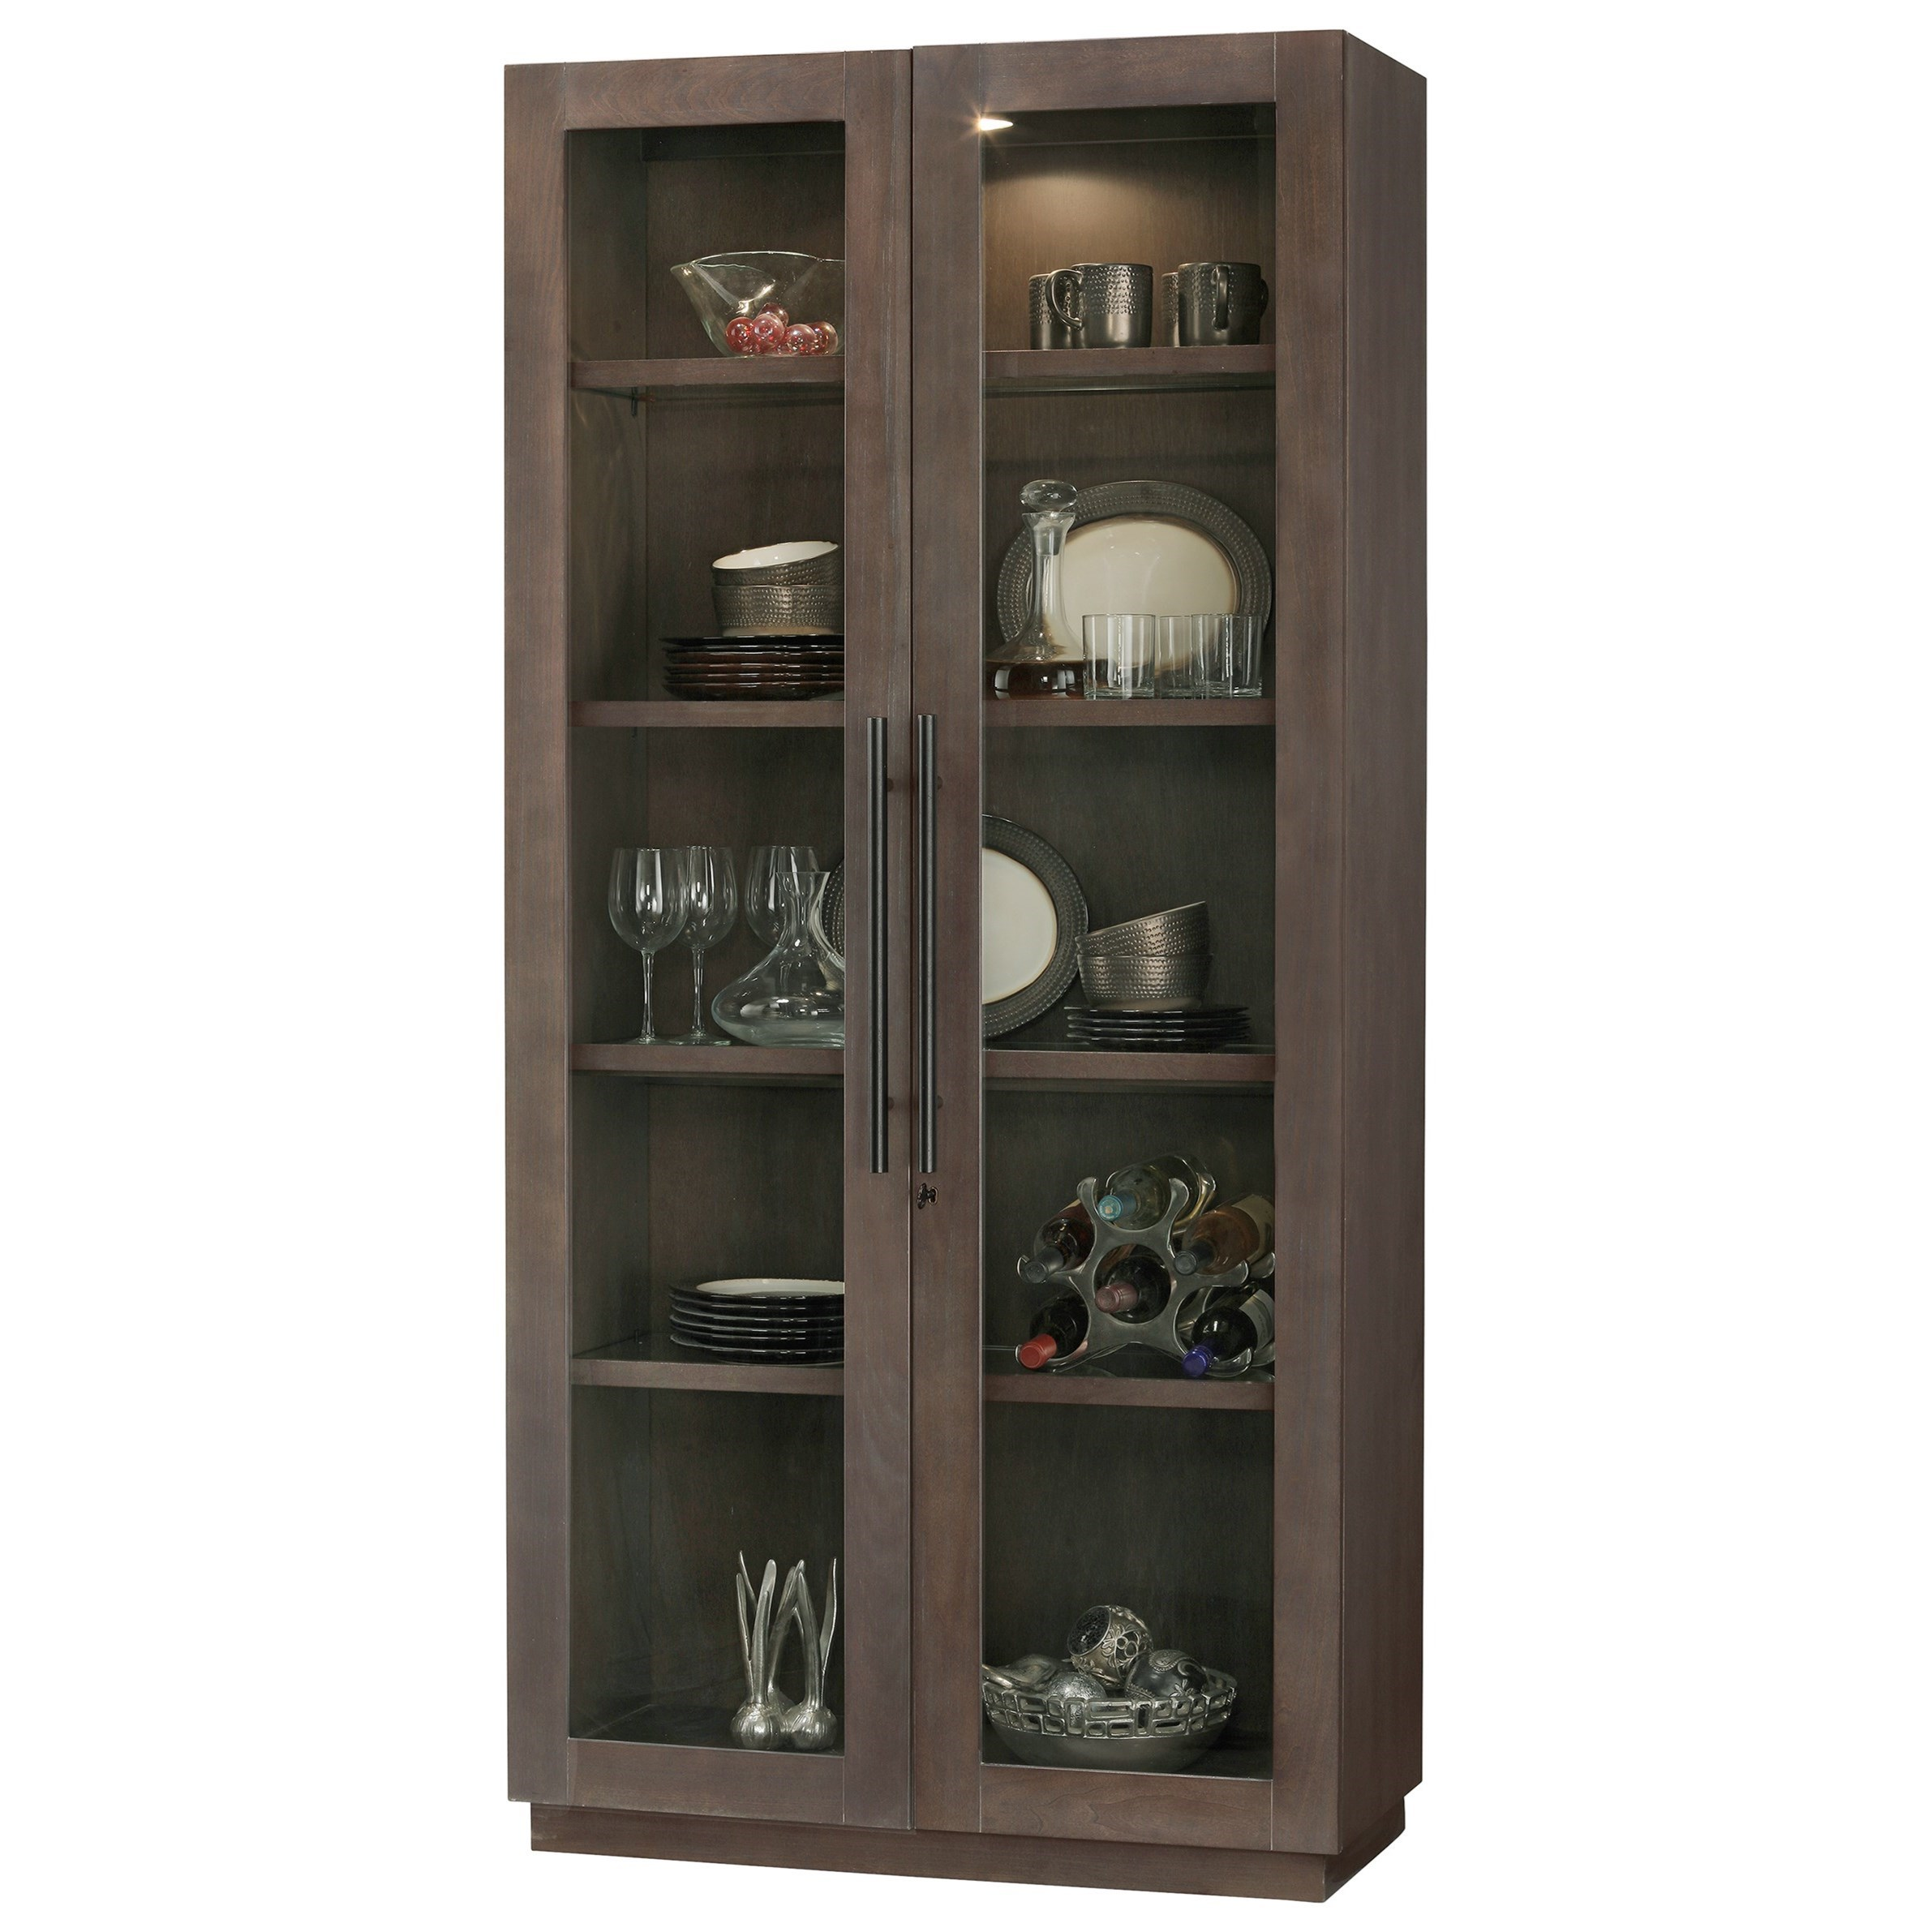 Howard Miller Cabinets Morrissey Cabinet with Interior